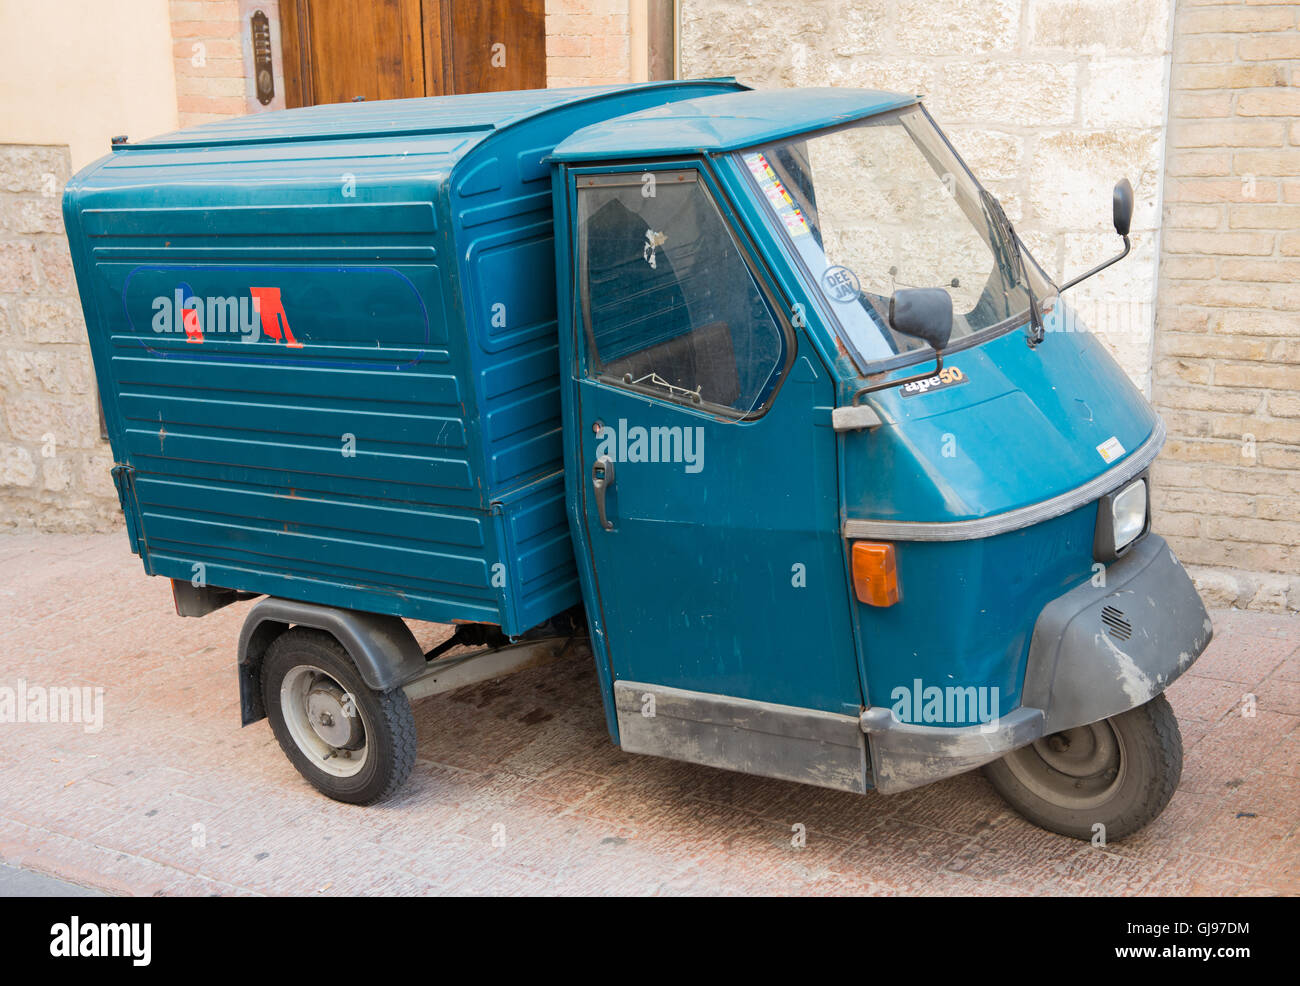 piaggio ape 50 three wheel van stock photo royalty free image 114529456 alamy. Black Bedroom Furniture Sets. Home Design Ideas